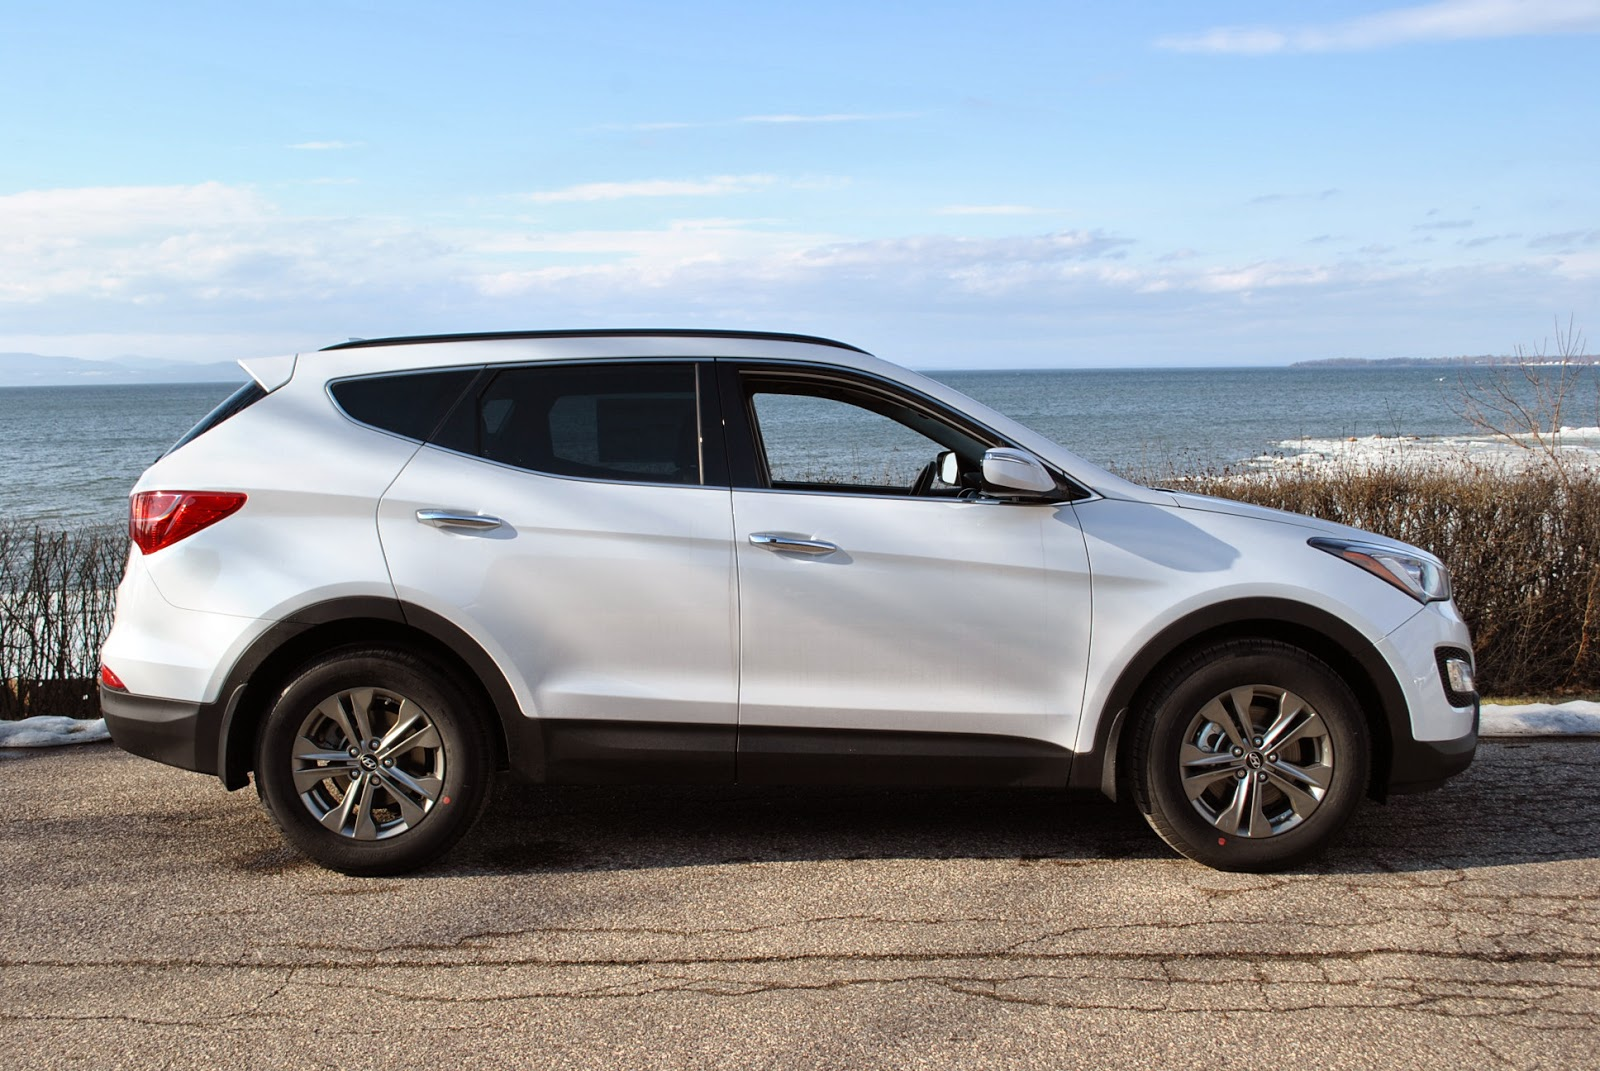 hyundai santa fe sport - photo #19